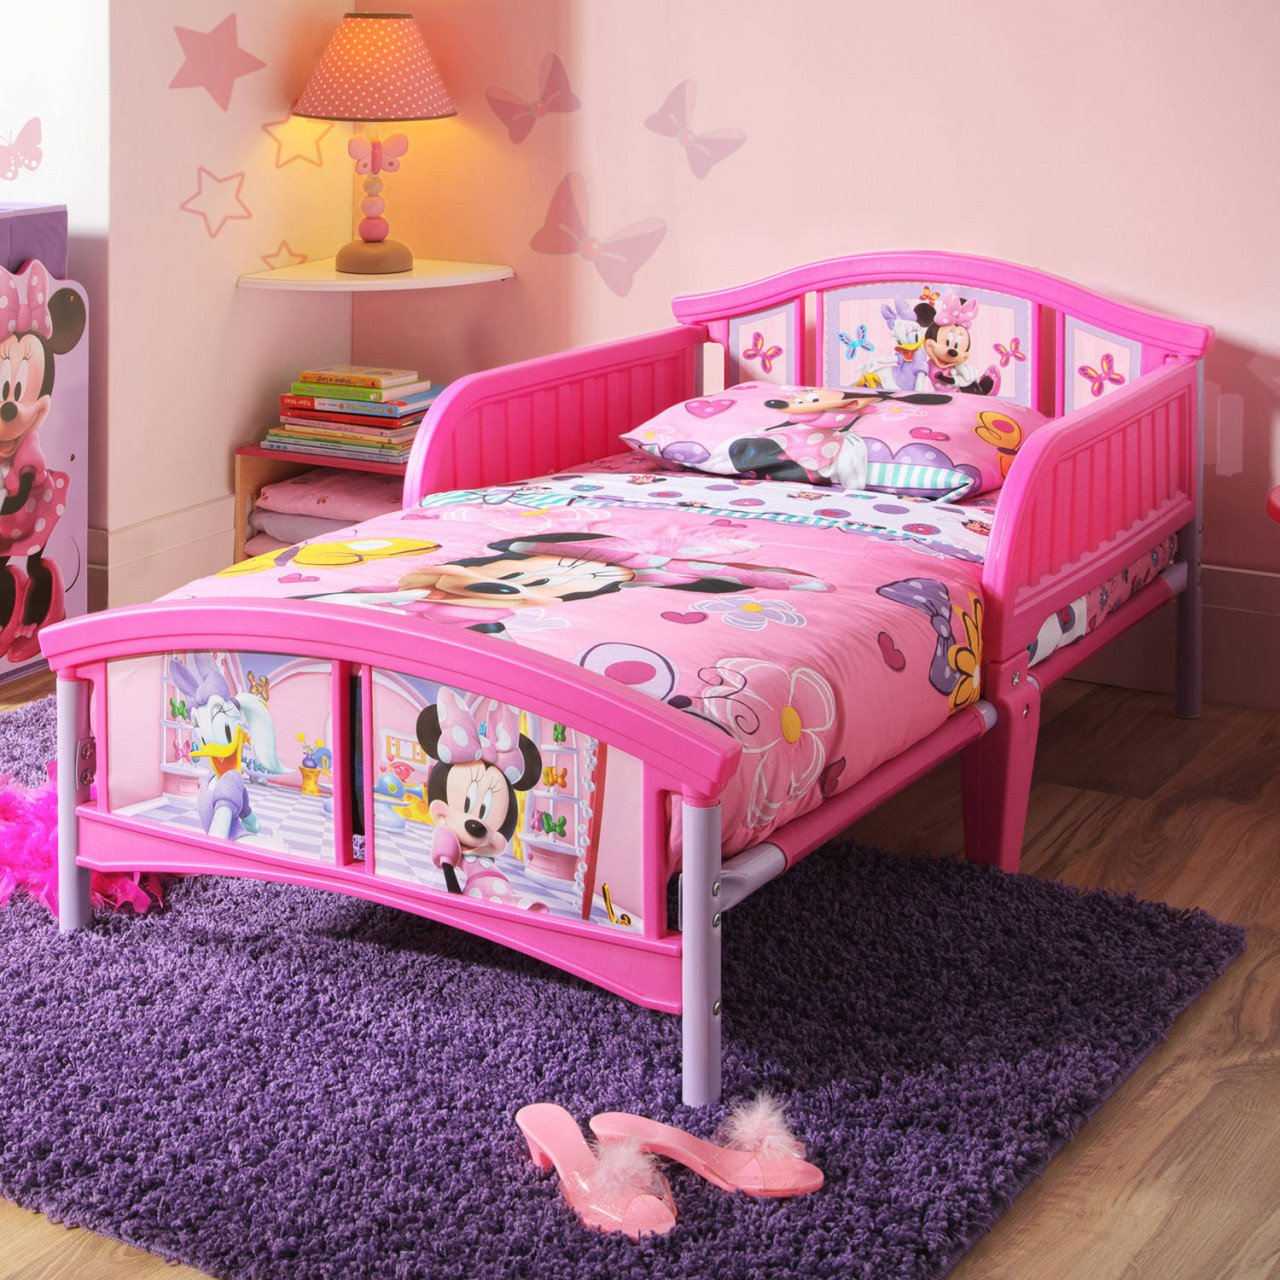 Minnie Mouse Bedroom Ideas Awesome Minnie Mouse Bedroom Set Full Size Decor Minnie Mouse